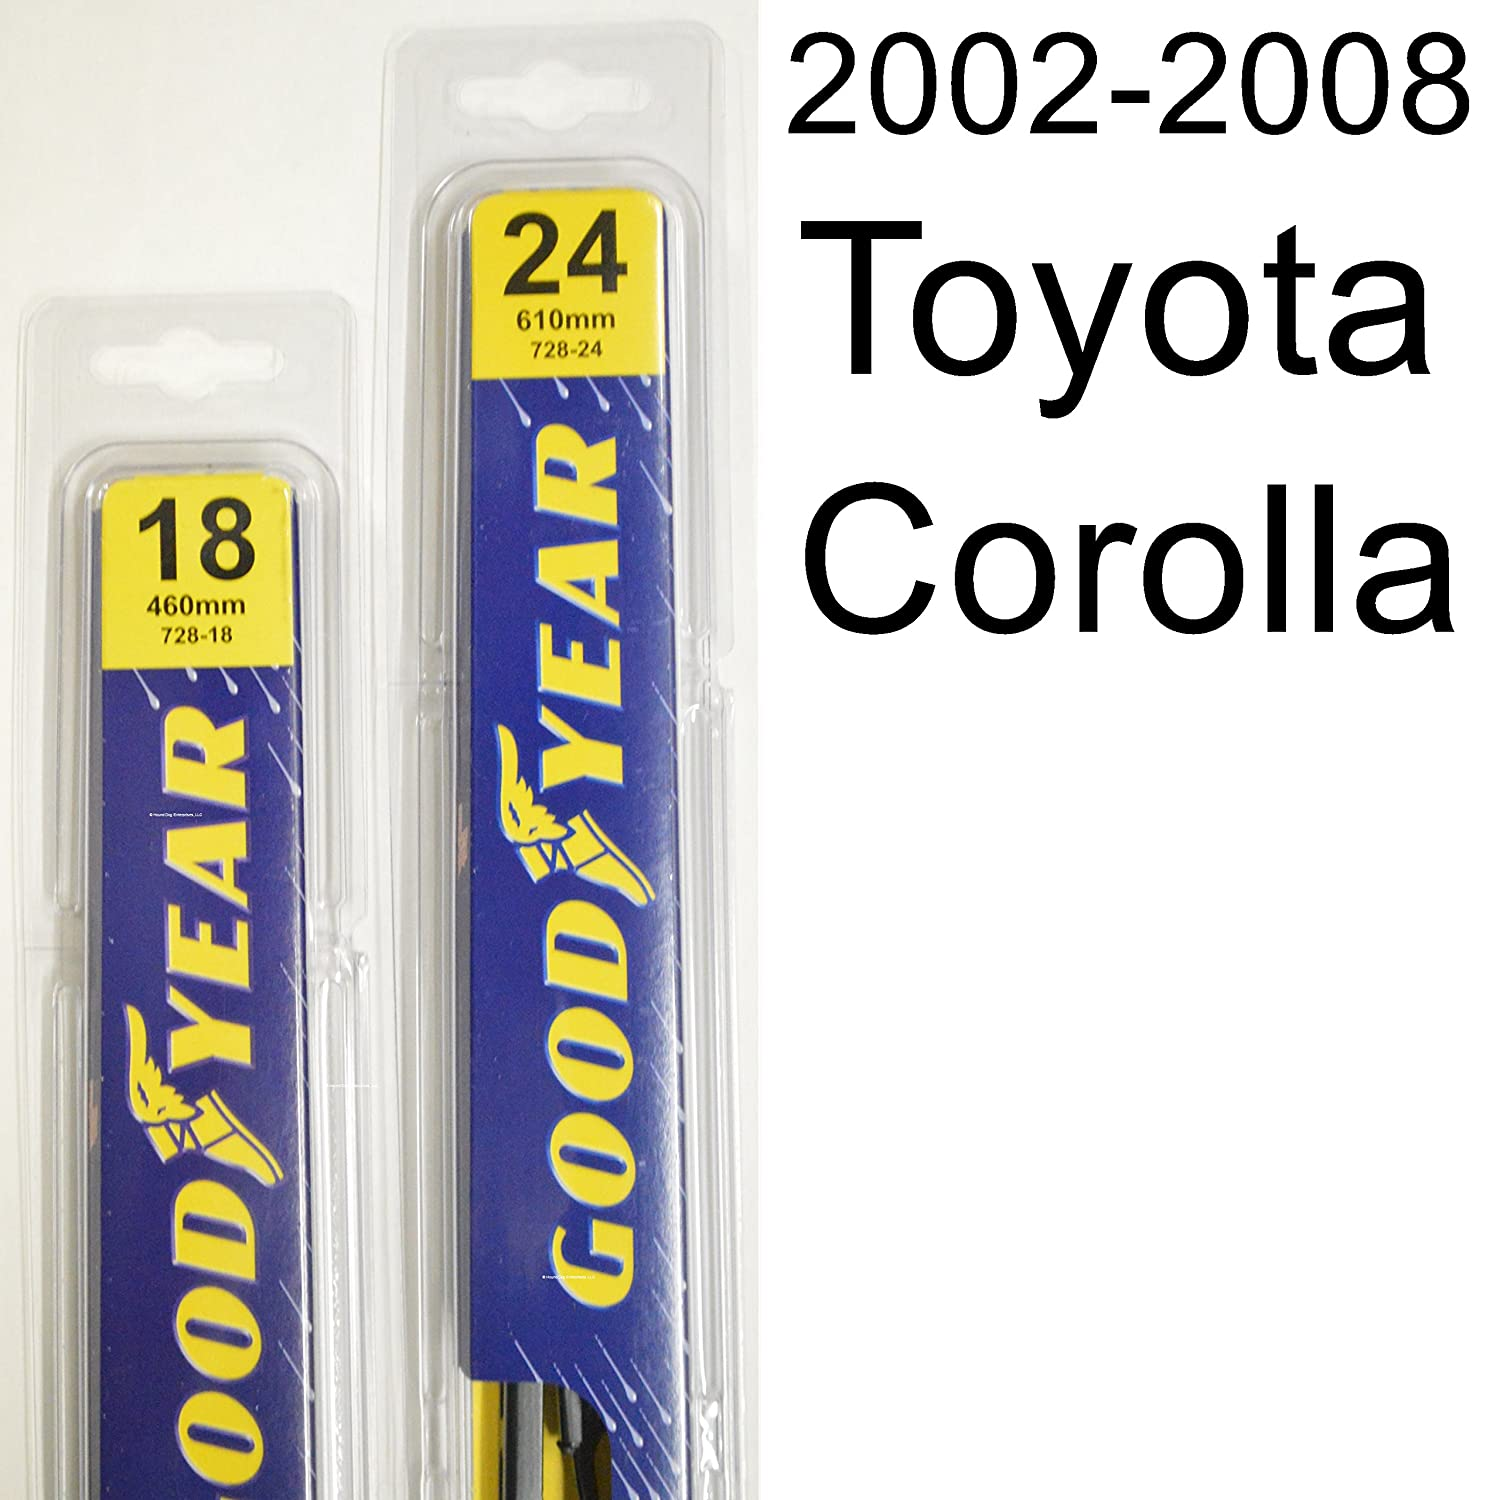 Toyota Corolla Owners Manual: Windshield wipers and washer